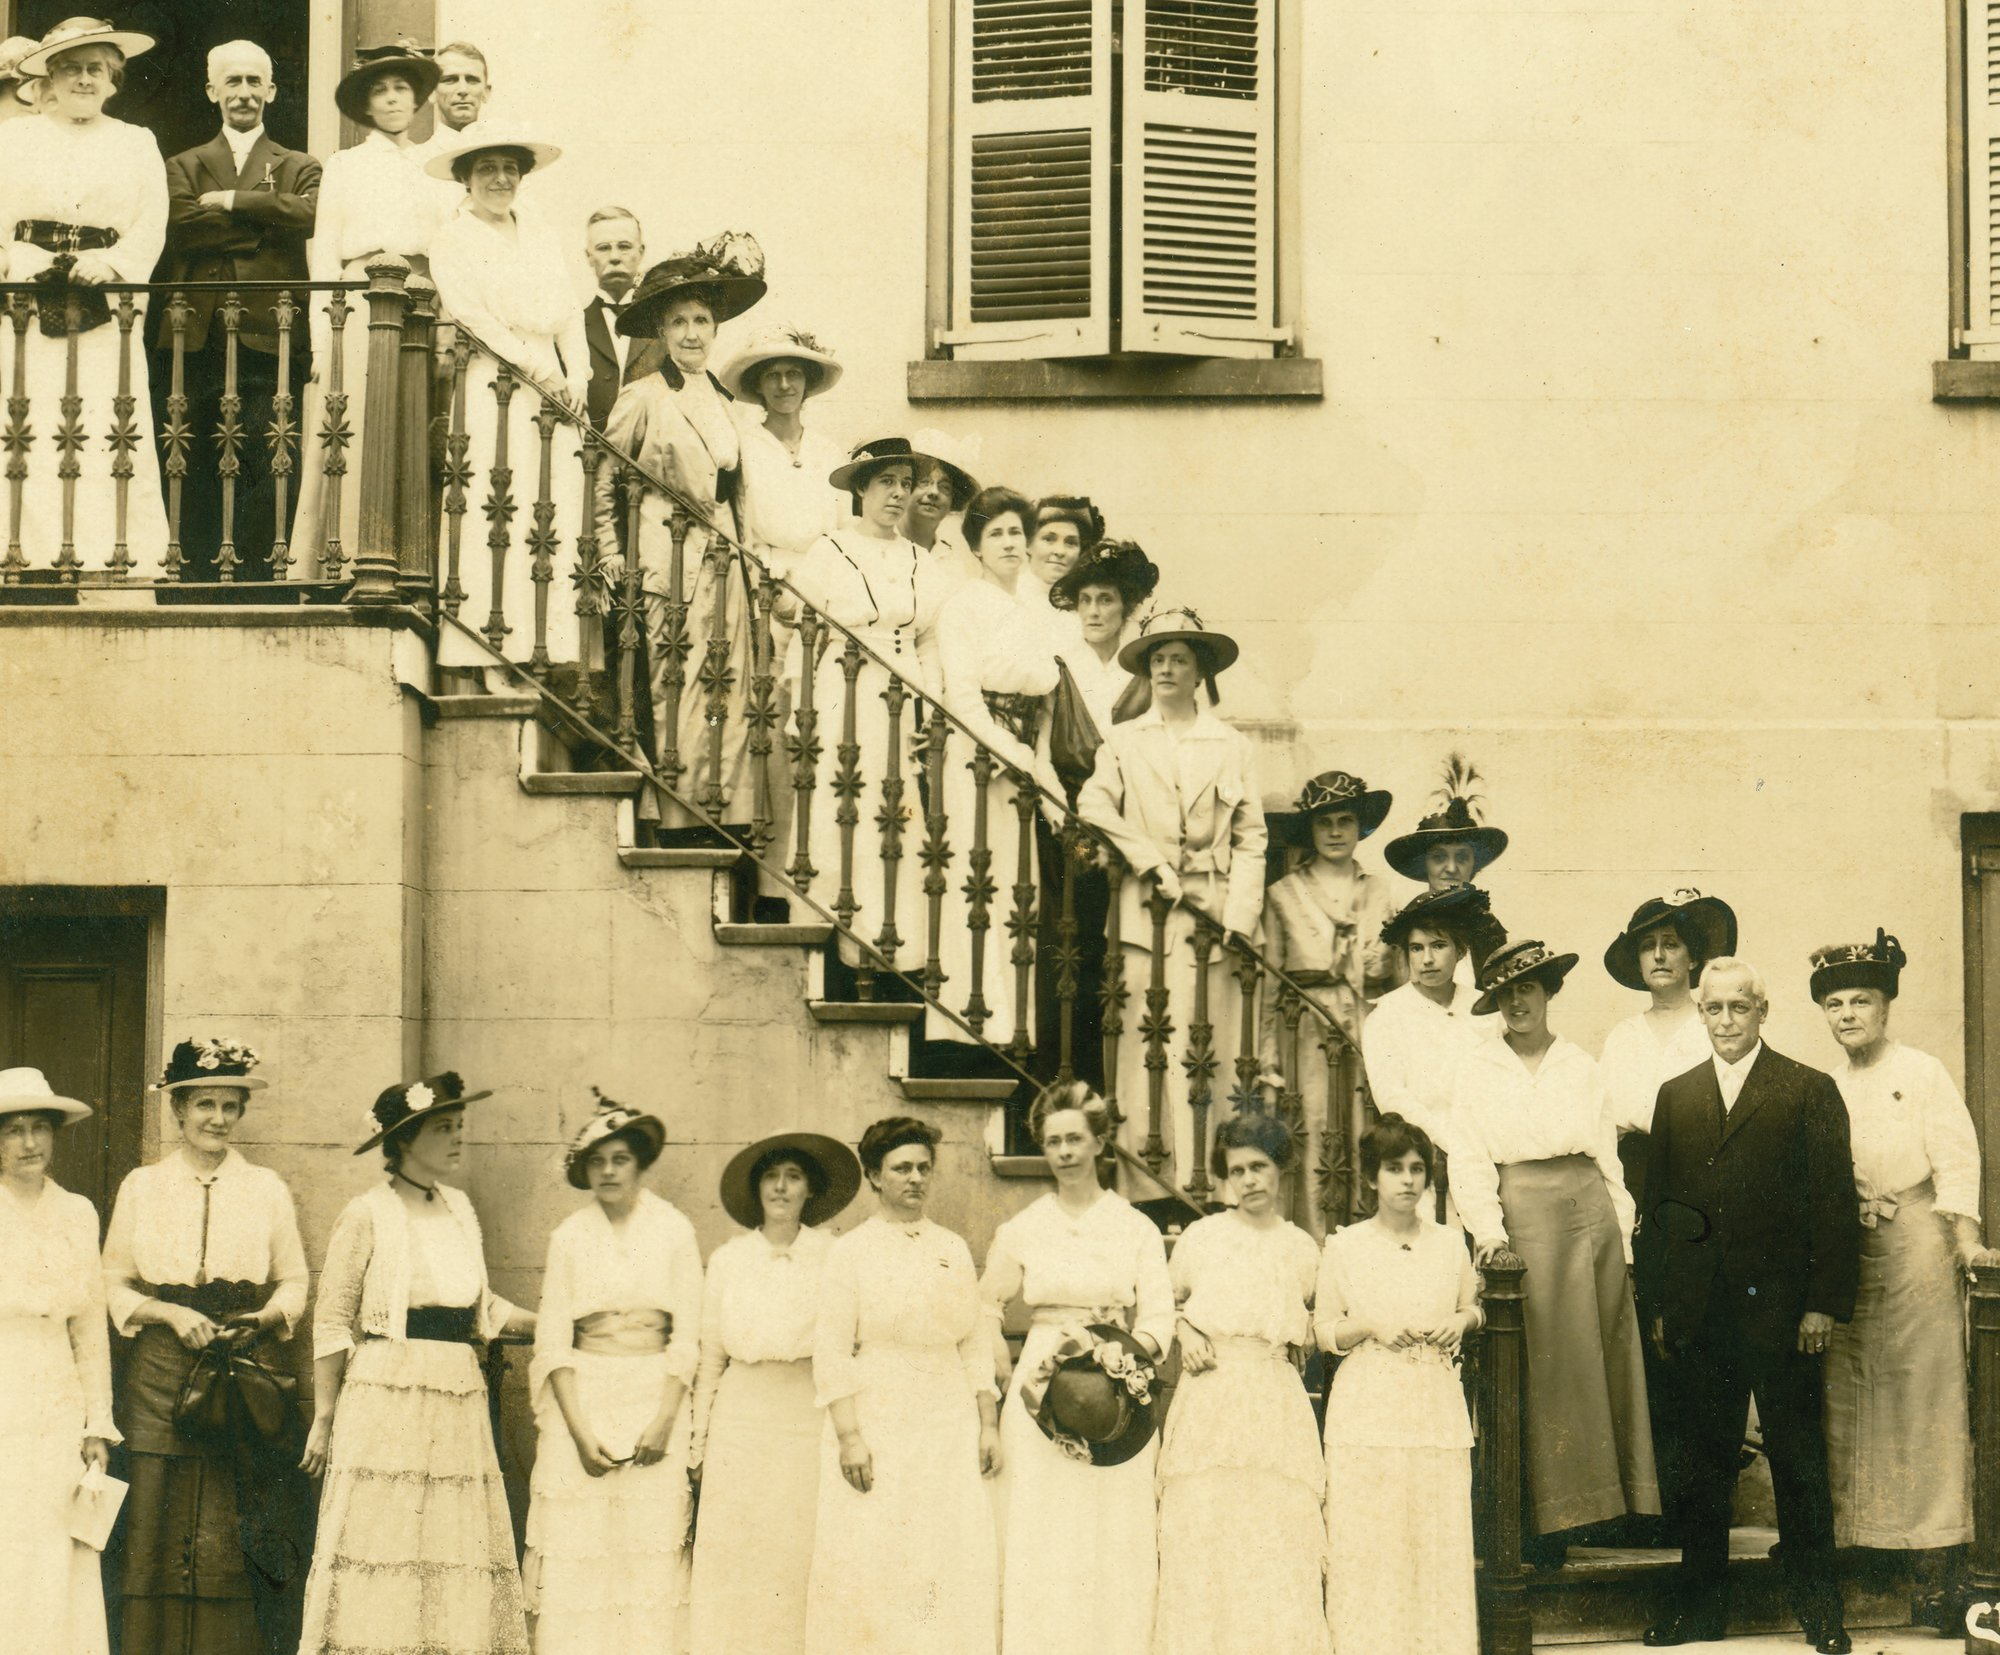 Susan Pringle Frost and Fellow Suffragists in Charleston, circa 1915.